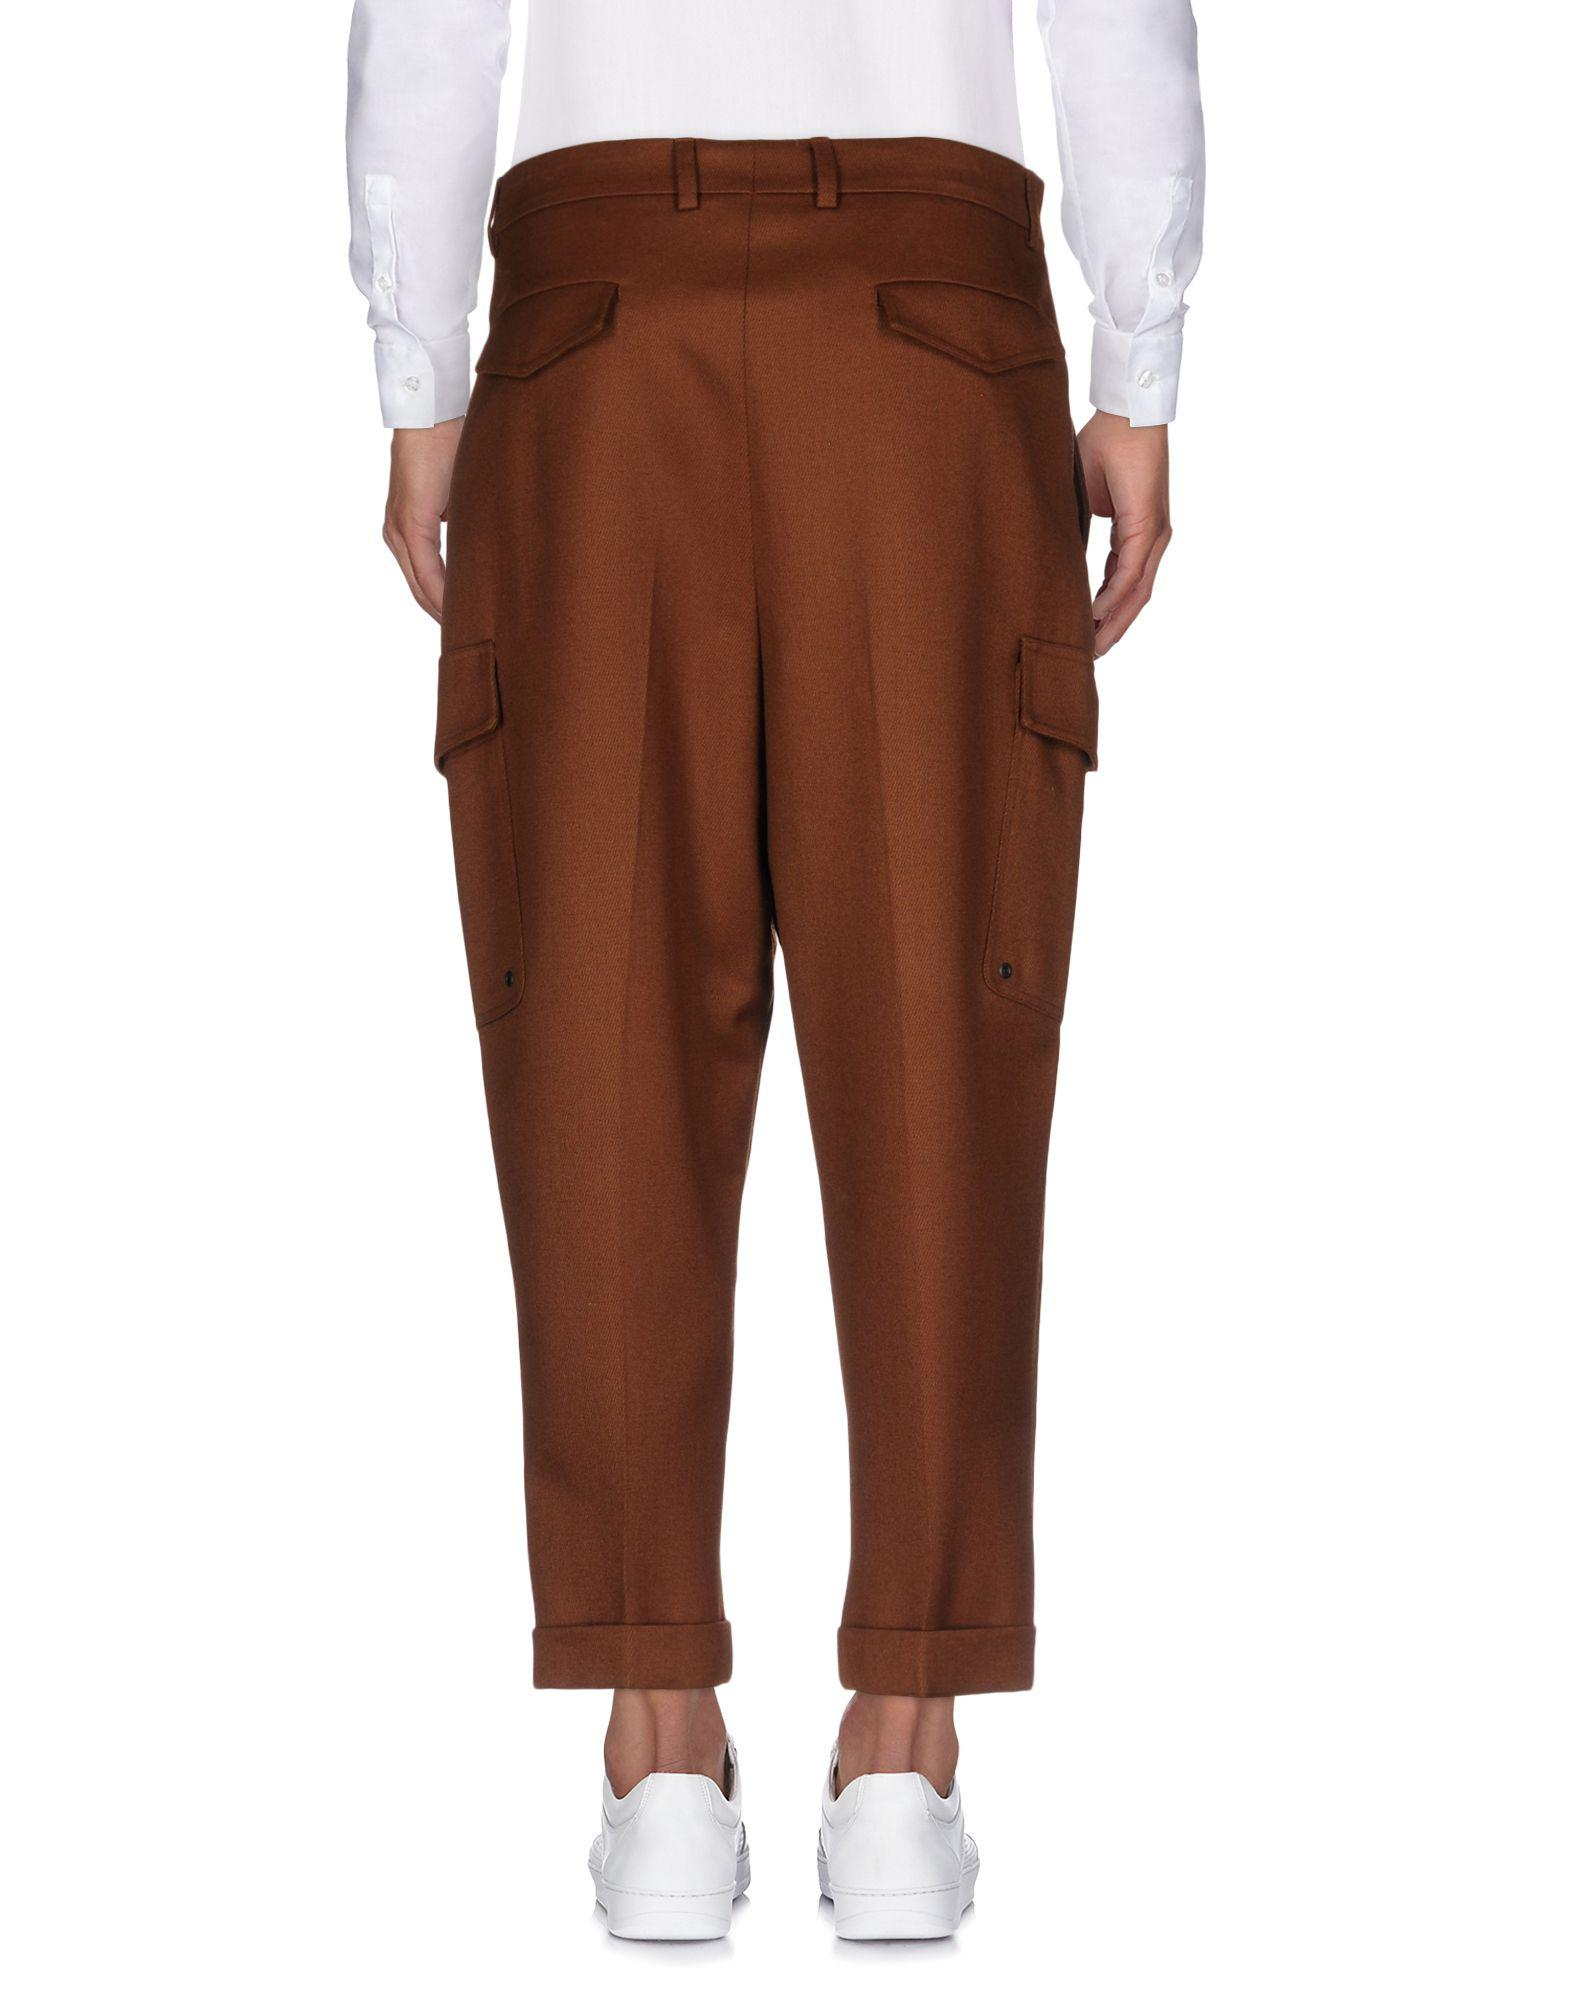 AMI Flannel Casual Trouser in Brown for Men